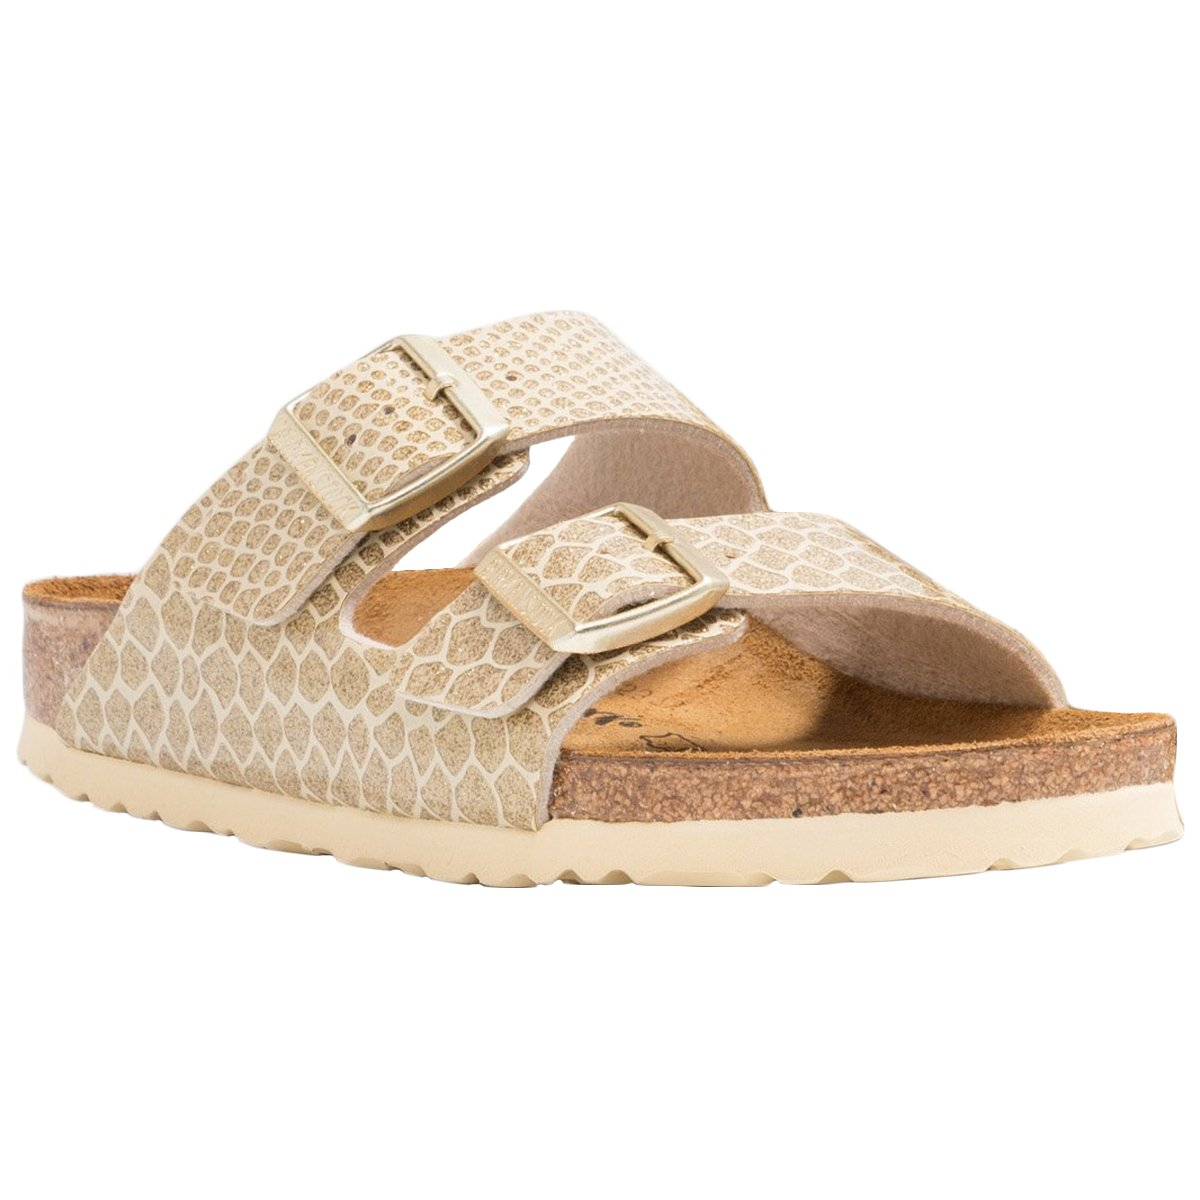 b7155de087b6 Galleon - Birkenstock Unisex Arizona Birko-Flor Magic Snake Gold Sandals 7  W   5 M US